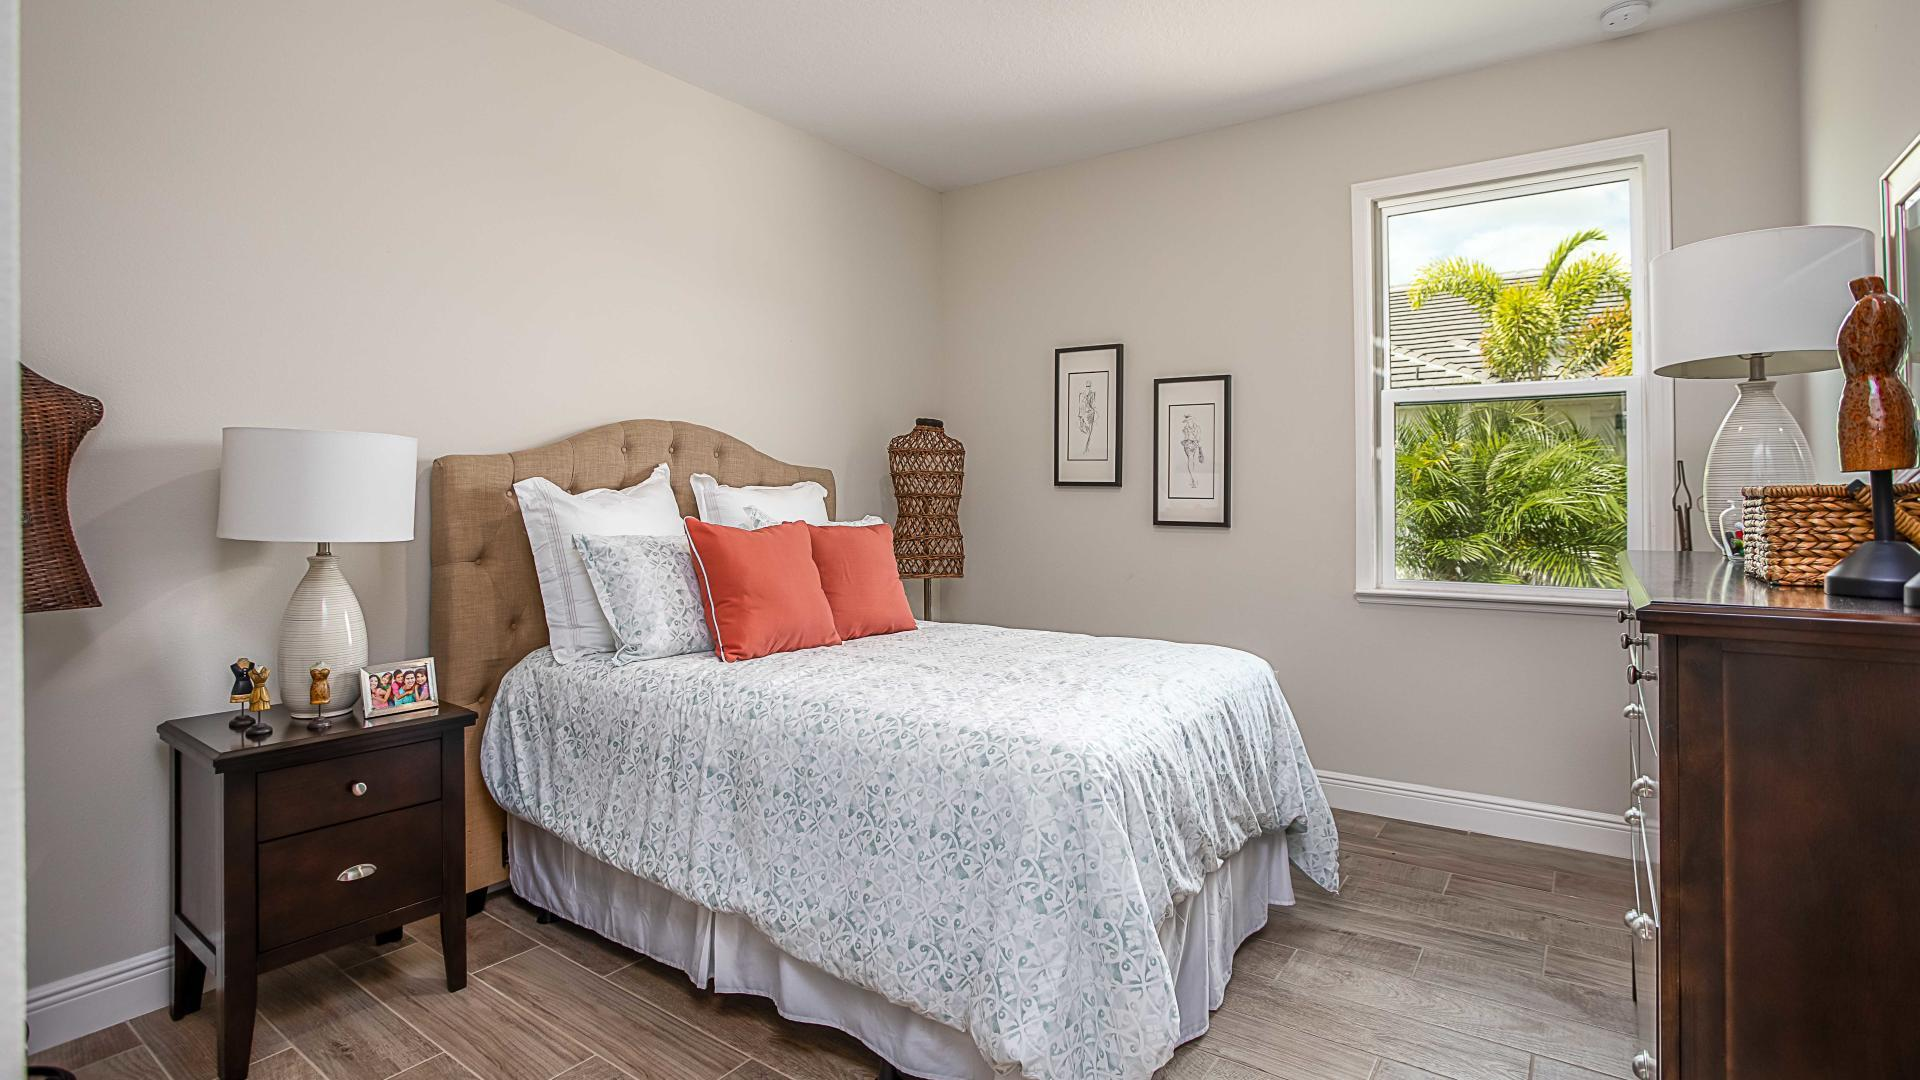 Bedroom featured in the Sienna By Maronda Homes in Martin-St. Lucie-Okeechobee Counties, FL